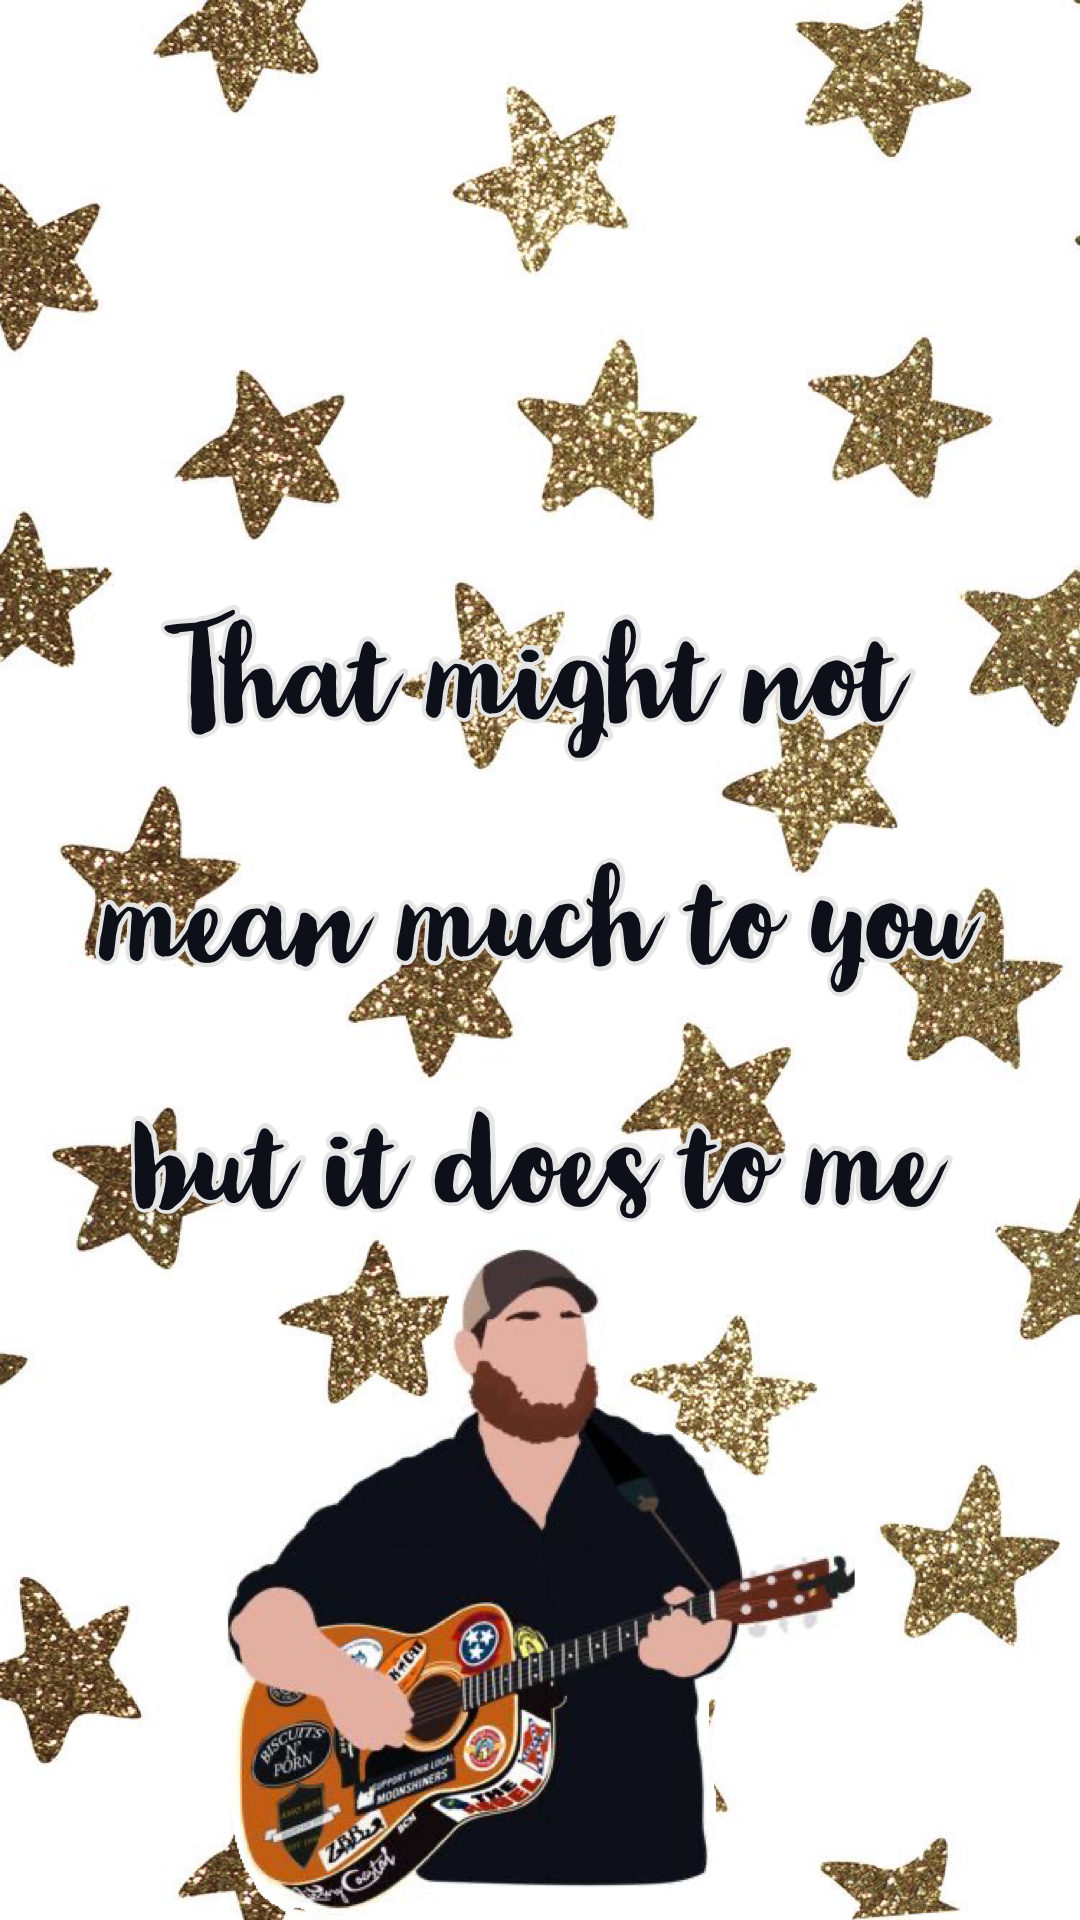 Luke combs wallpaper